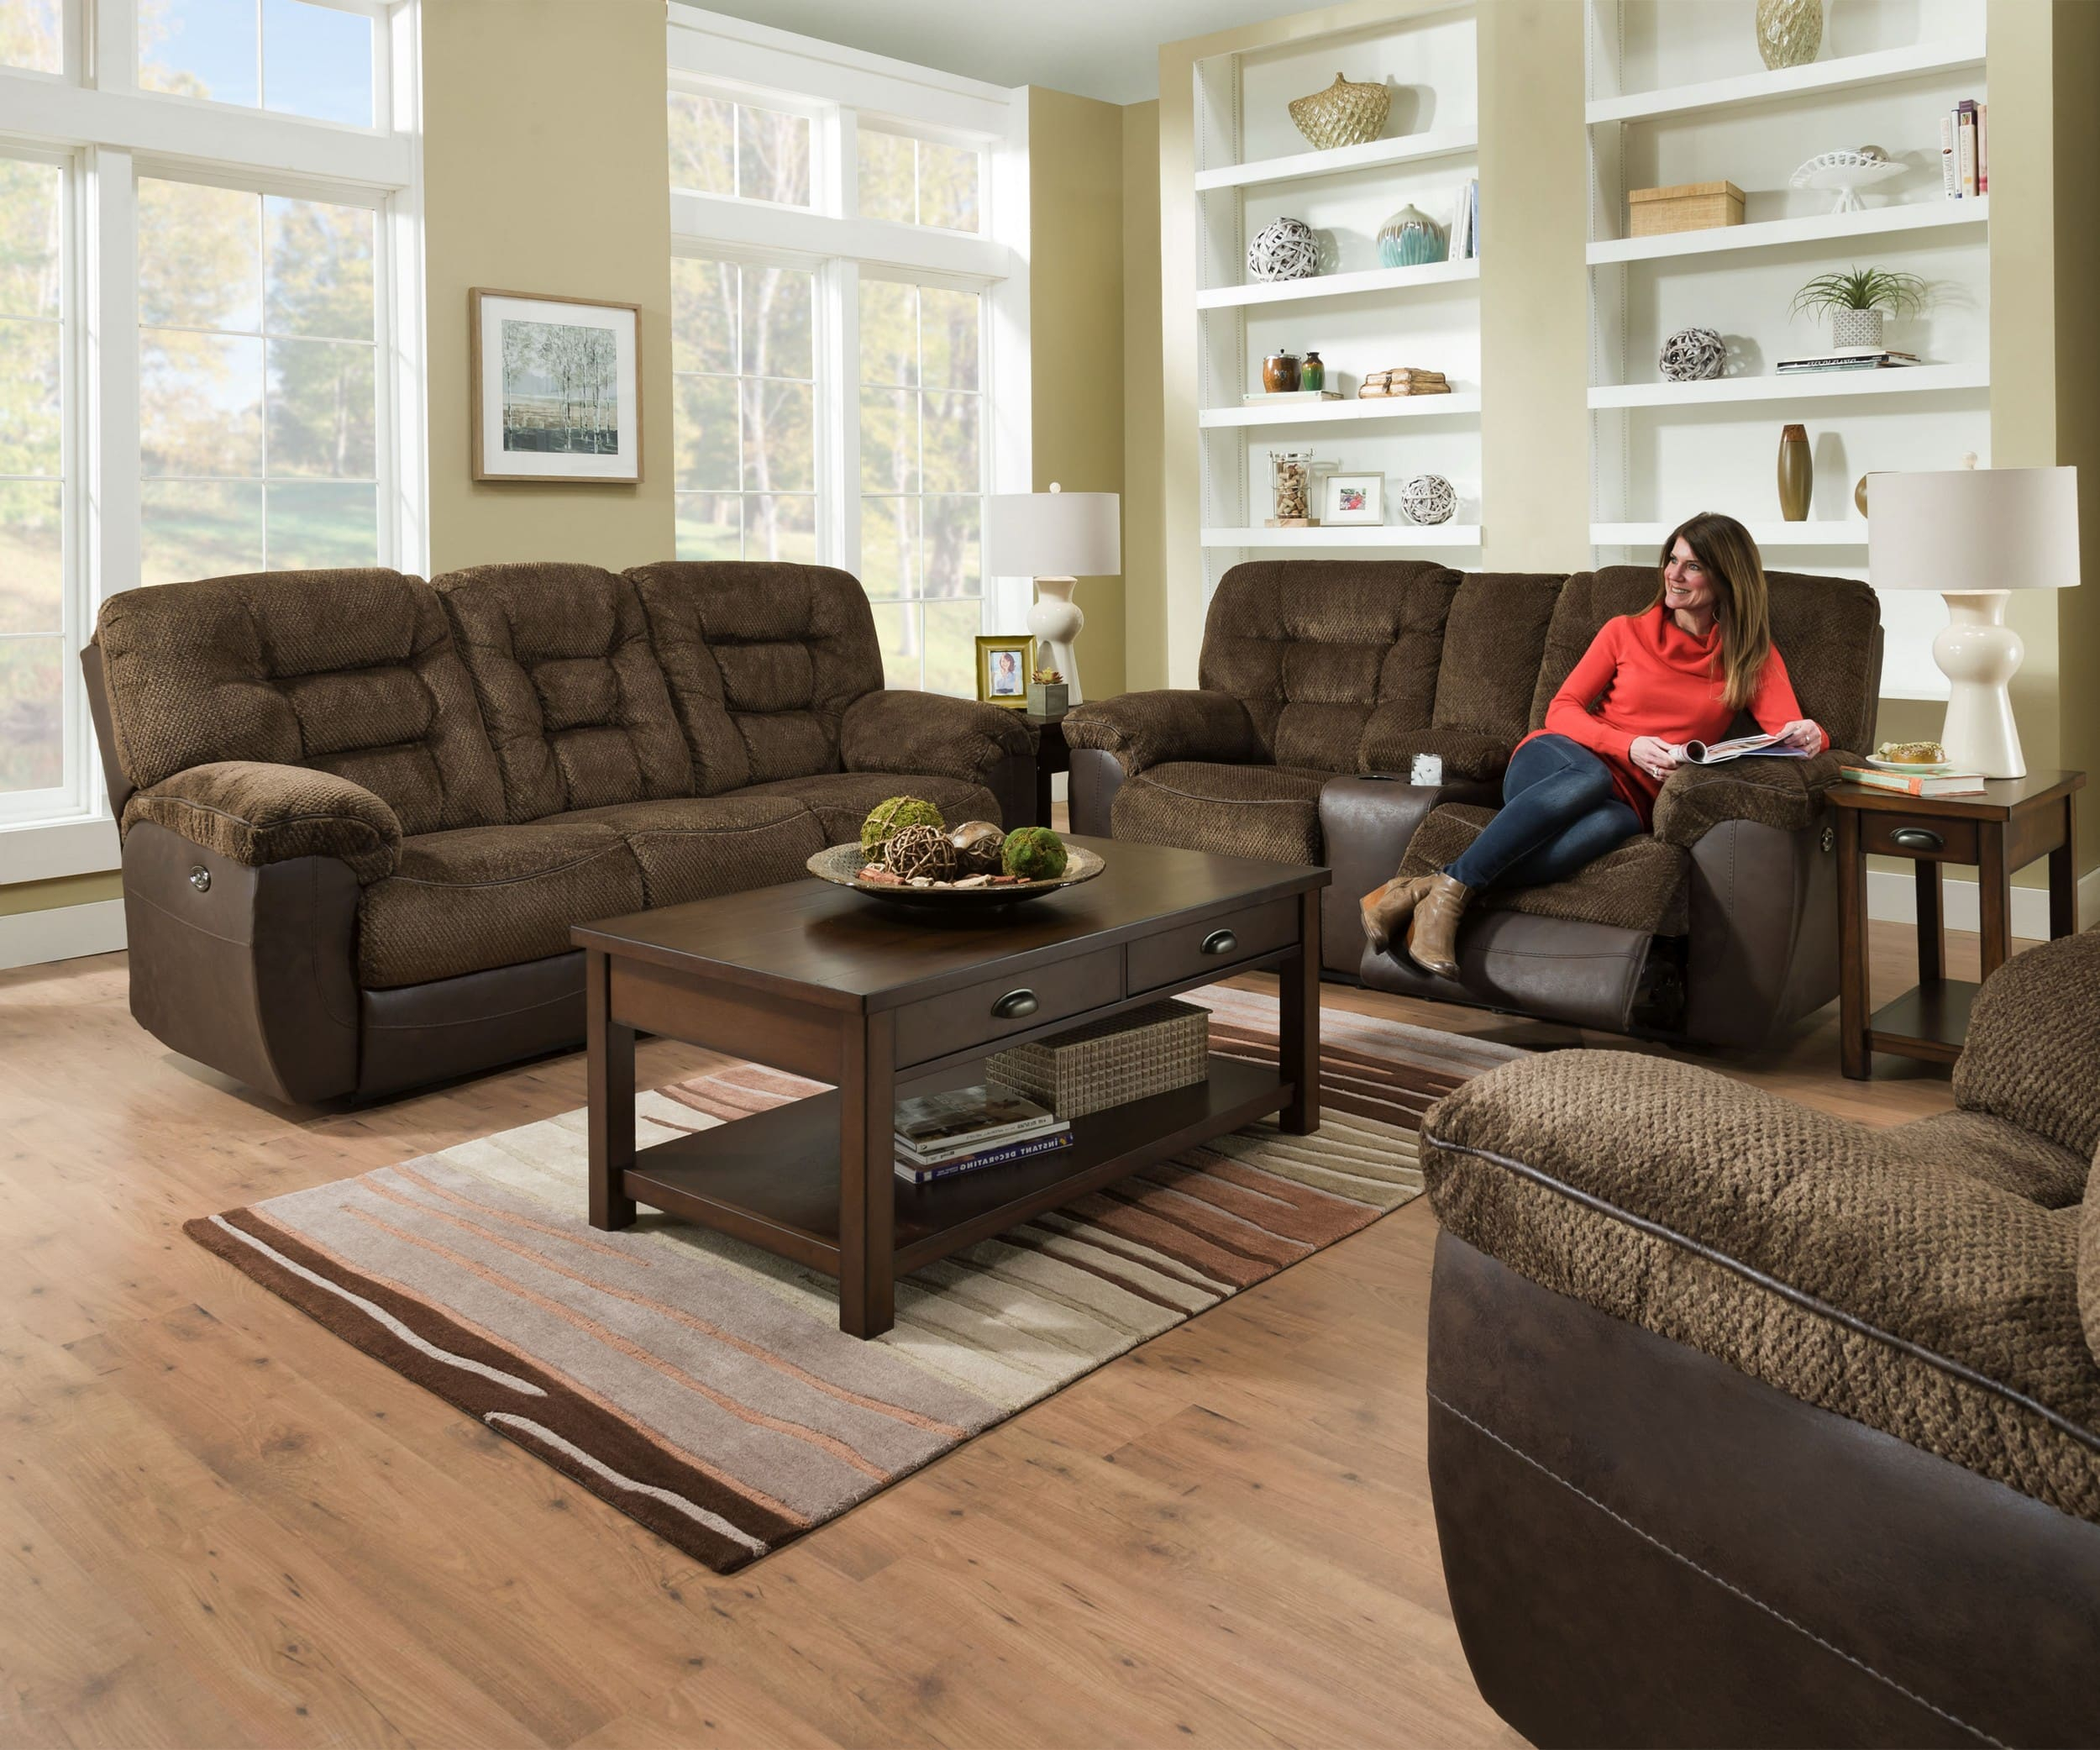 Simmons Upholstery Darcy Chocolate Reclining 2 Piece Living Room Set with 14 Clever Concepts of How to Build Simmons Living Room Set